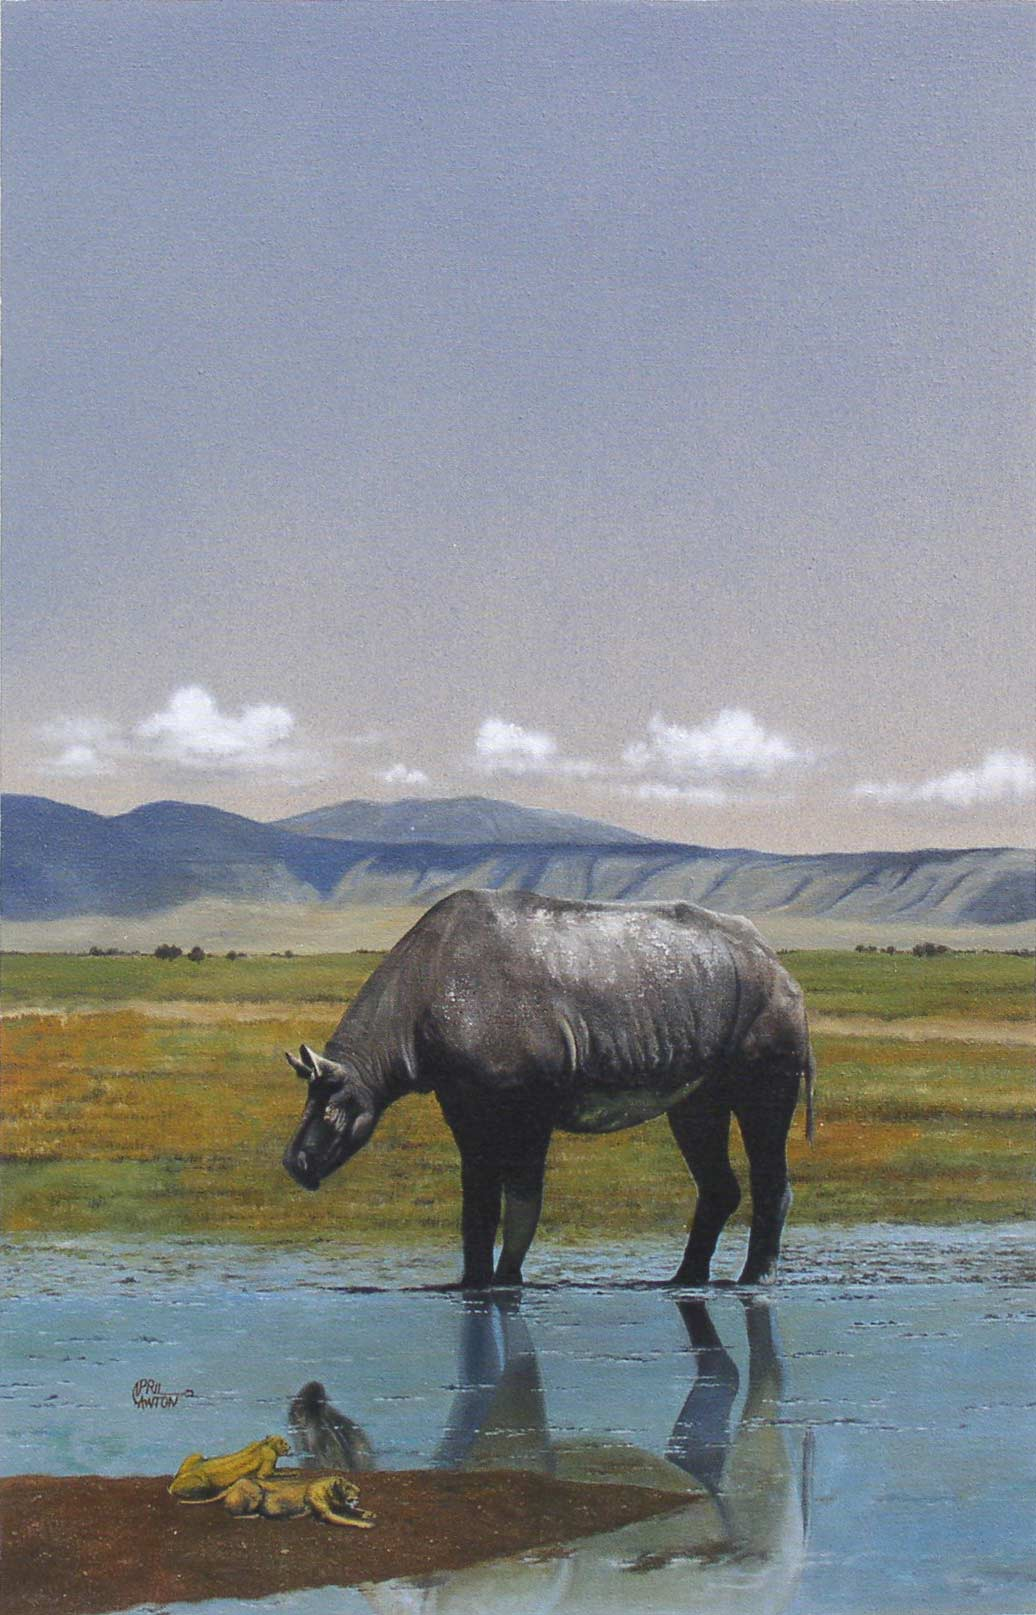 Baluchitherium (early rhinocerous) by April Lawton